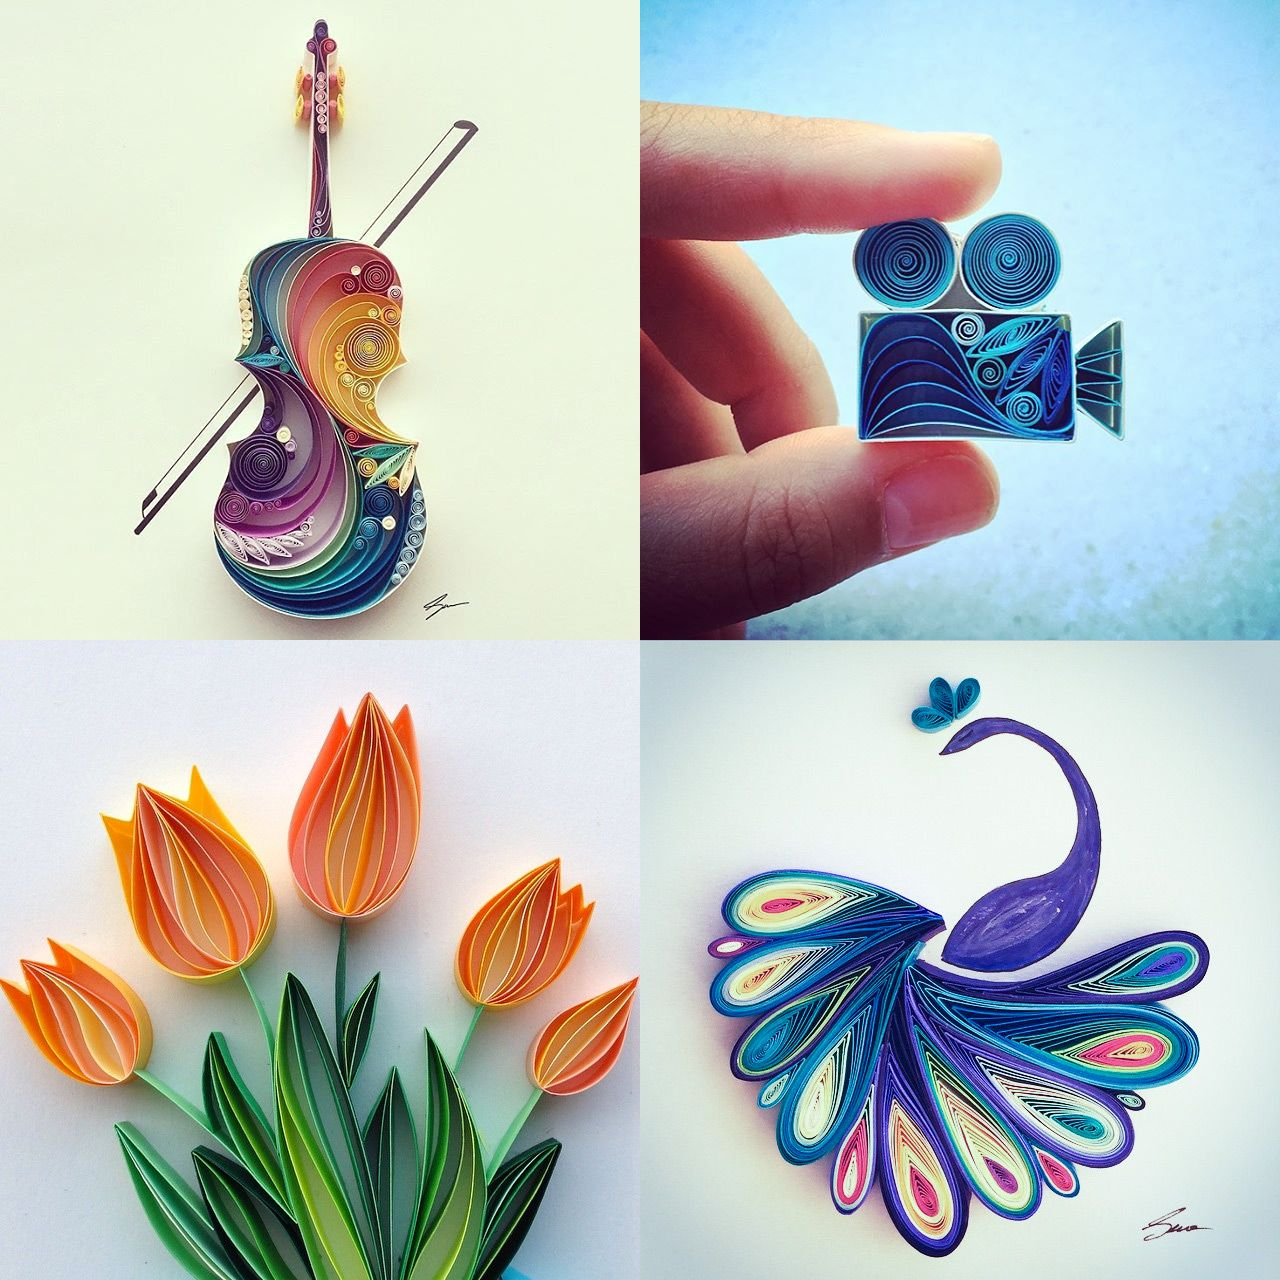 Colorful quilled paper designs by sena runa colossal for Paper quilling art projects